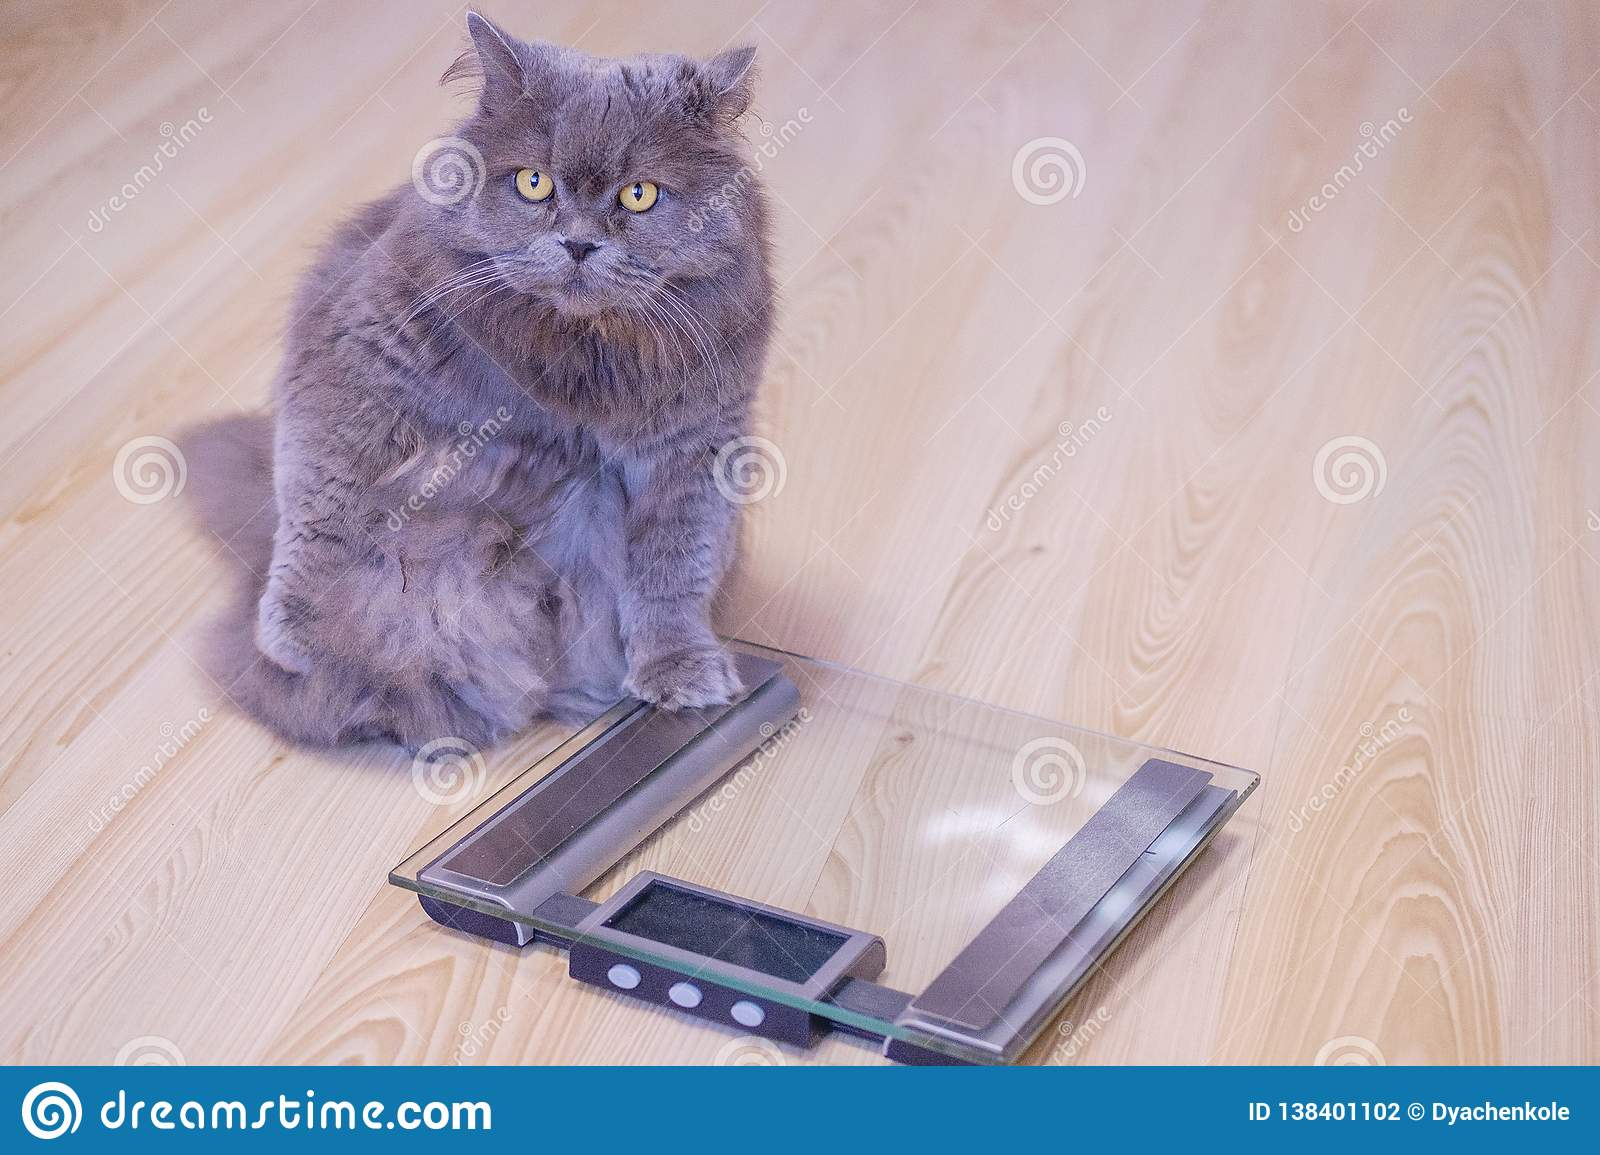 The gray big long-haired British cat sits near the scales and looks up. Concept weight gain during the New Year holidays, obesity,